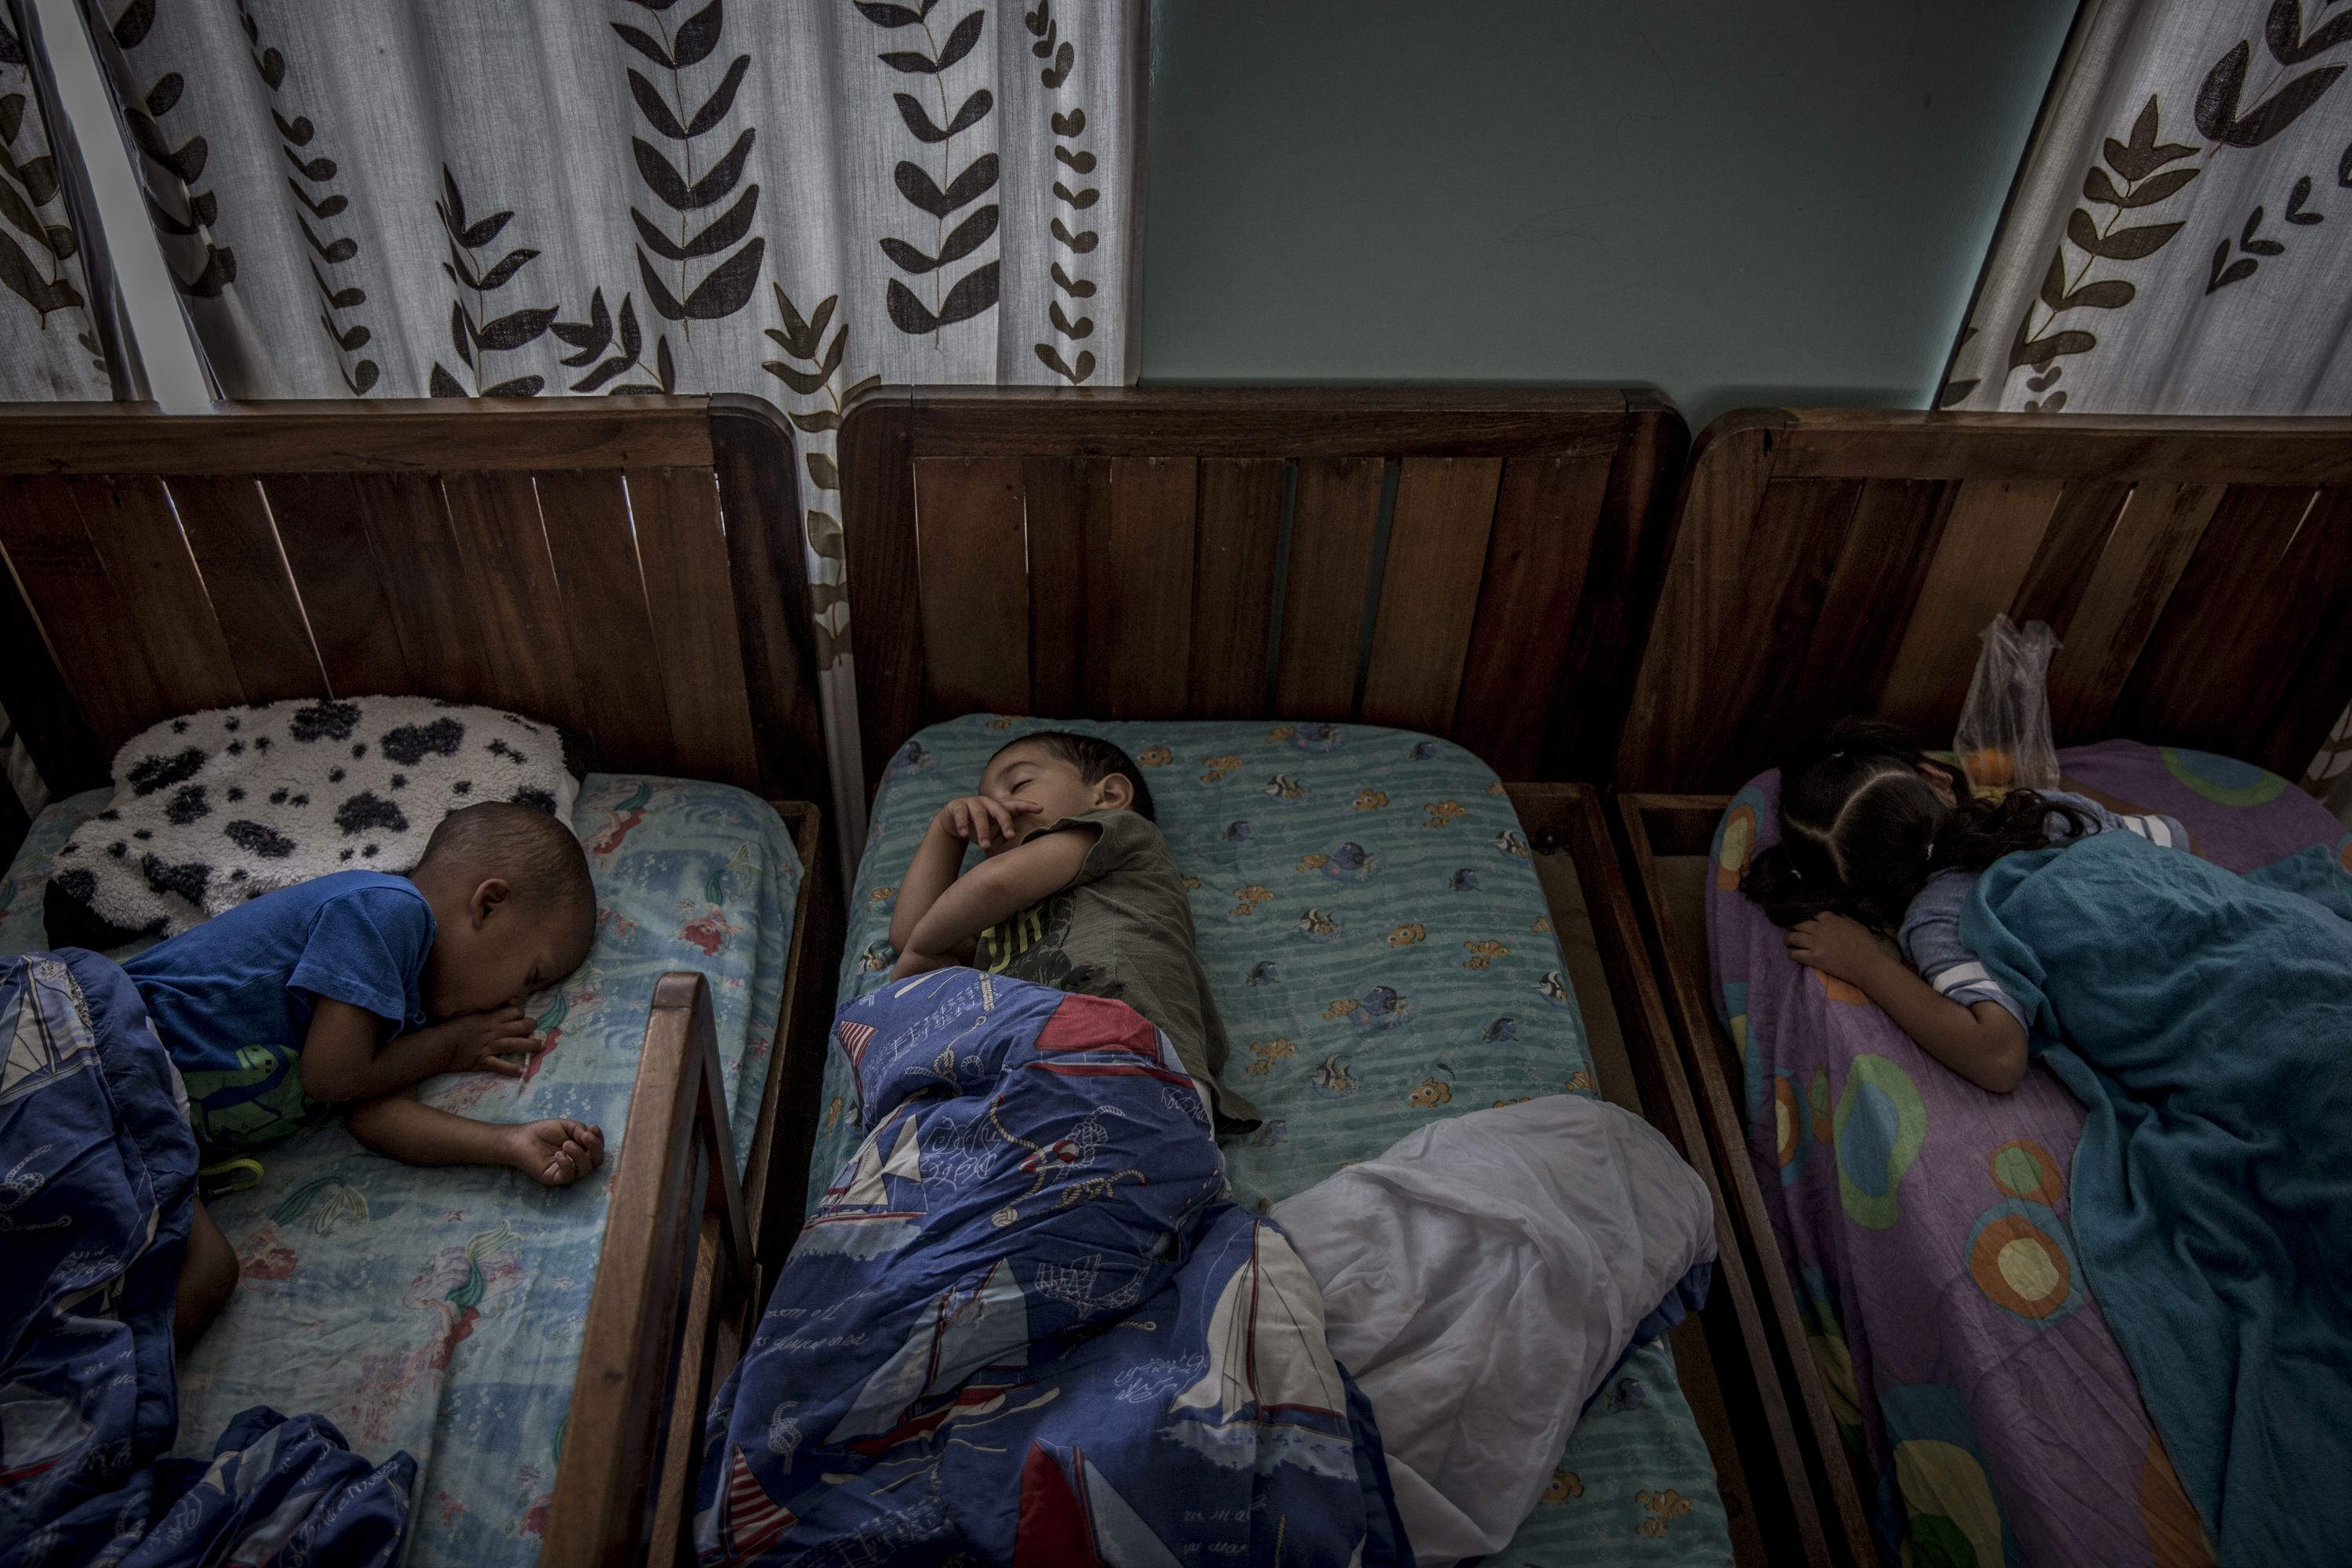 Niños durmiendo en Bambi Home, en Caracas (Venezuela) (The Washington Post / Alejandro Cegarra)